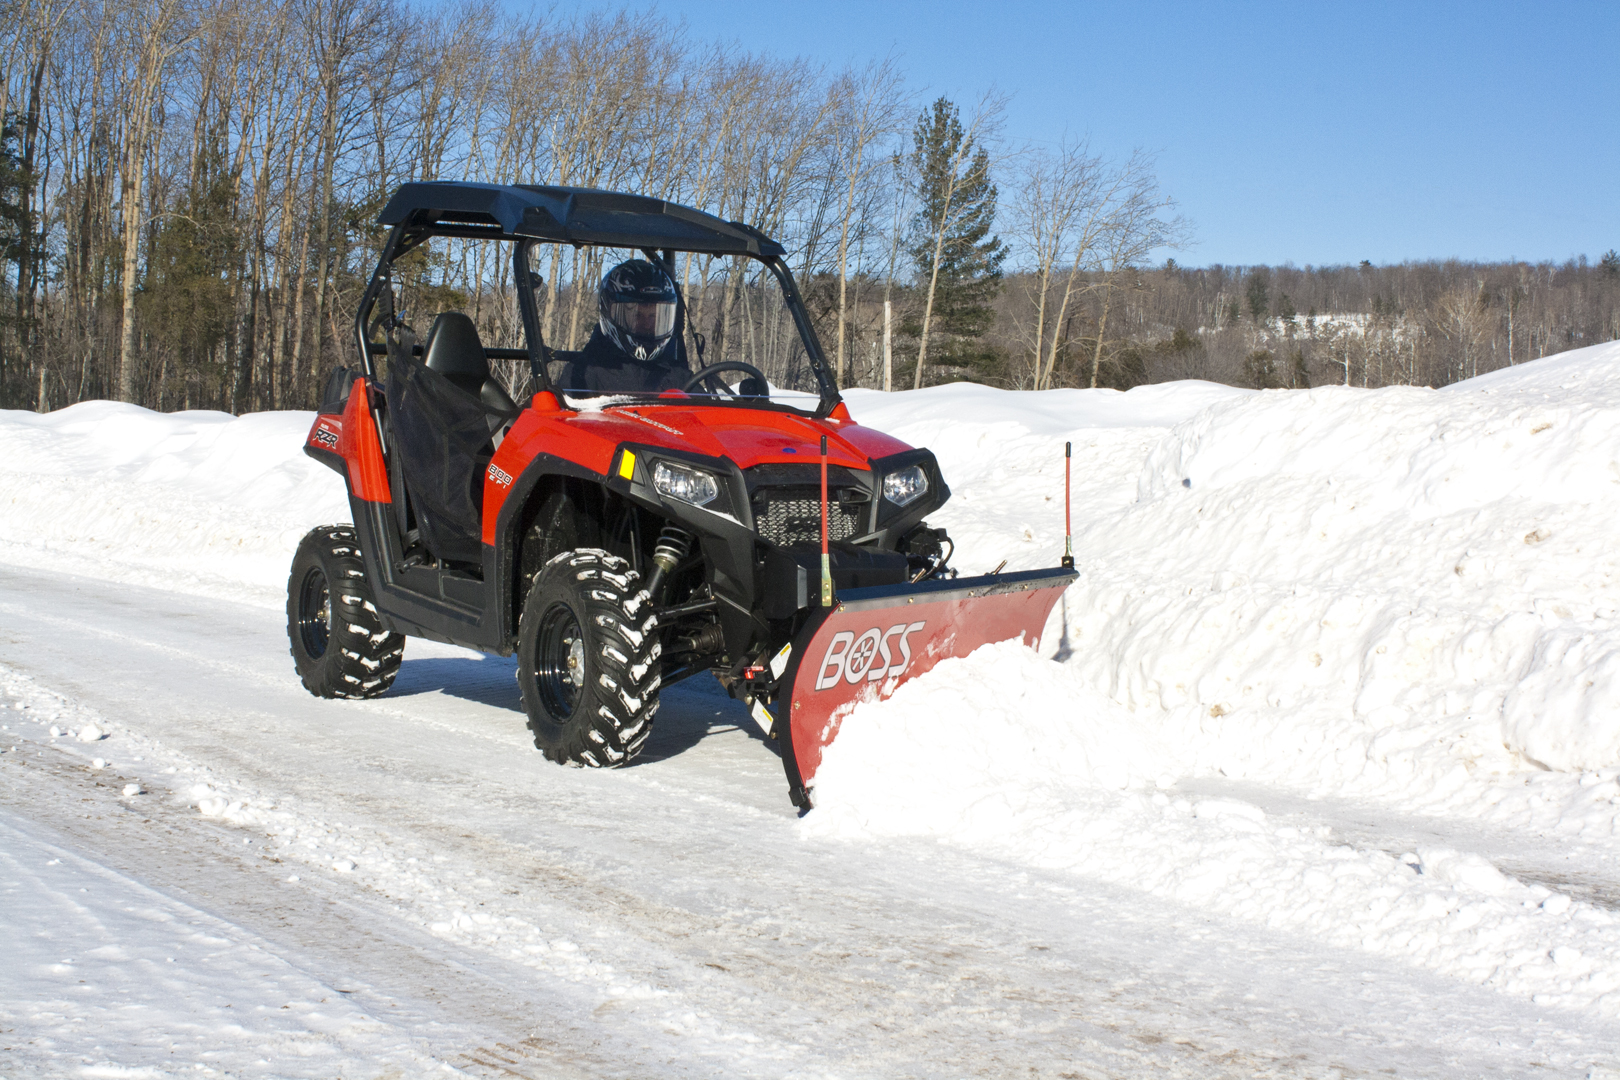 What Everyone Ought To Know Before Purchasing An Atv Or